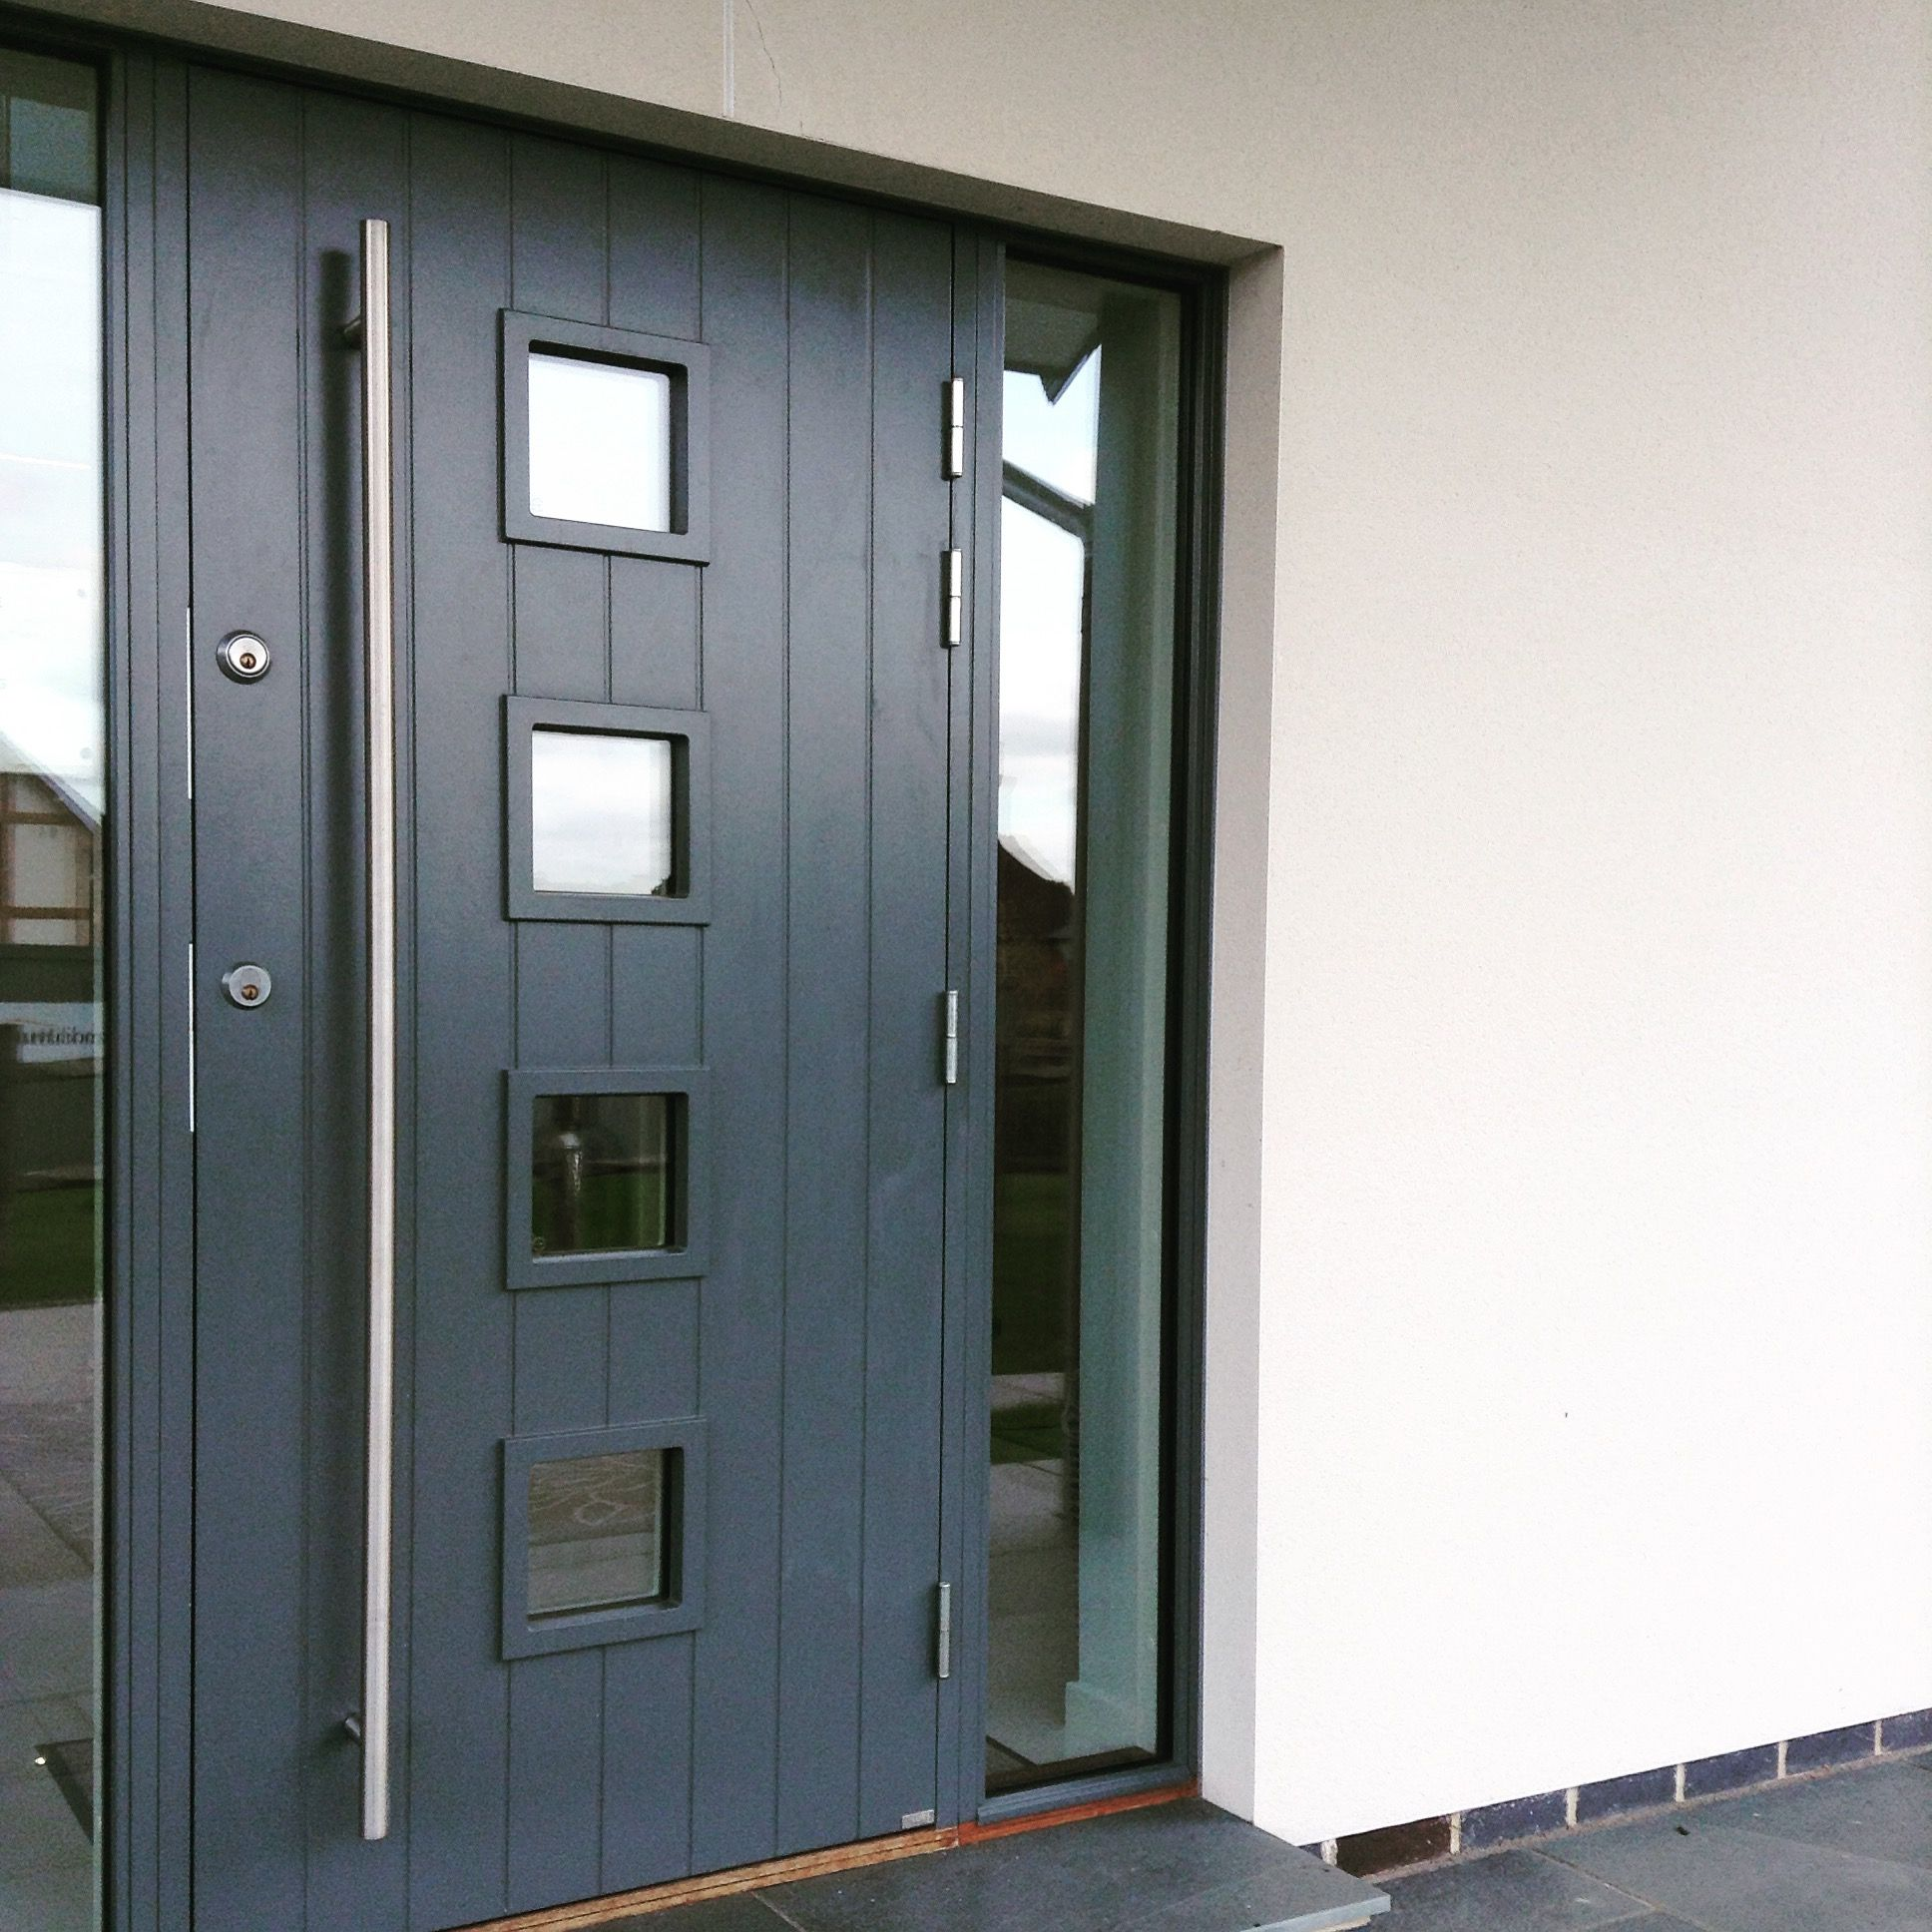 Timber Frame Self Build Homes From Scandia Hus: Contemporary Modern Long Bar Handle Grey Front Door